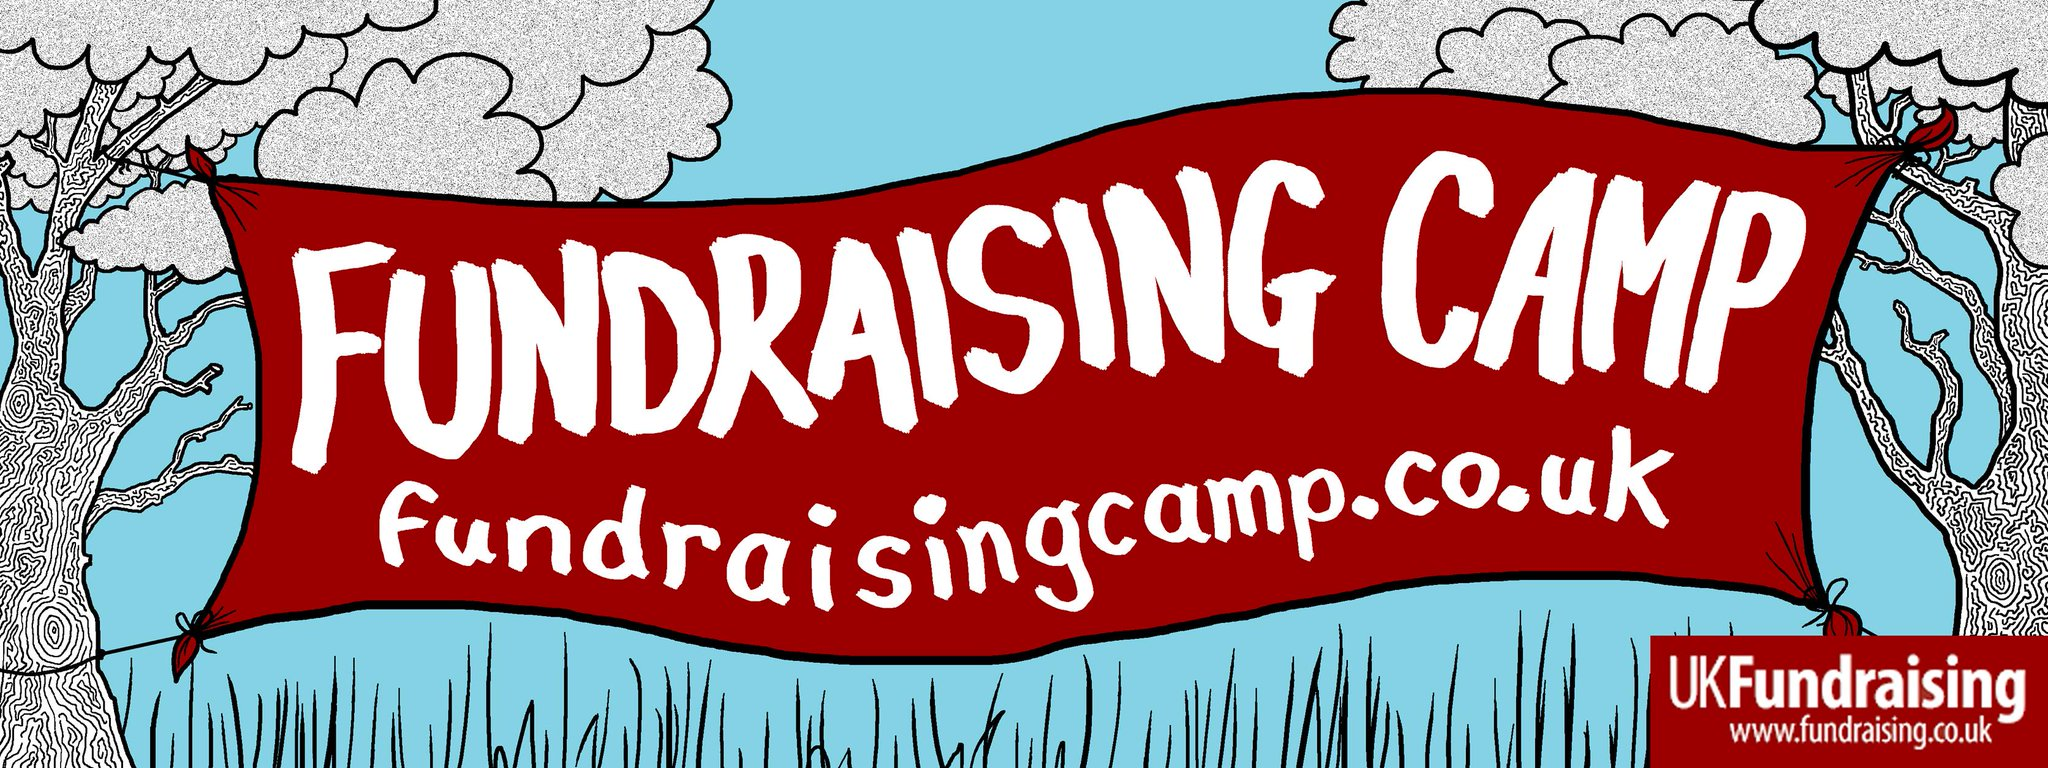 Arts charity fundraisers: #FundraisingCamp comes to Chatham on 14 July: https://t.co/lLSPIM6how via @ukfundraising https://t.co/MmiDuoF2q7